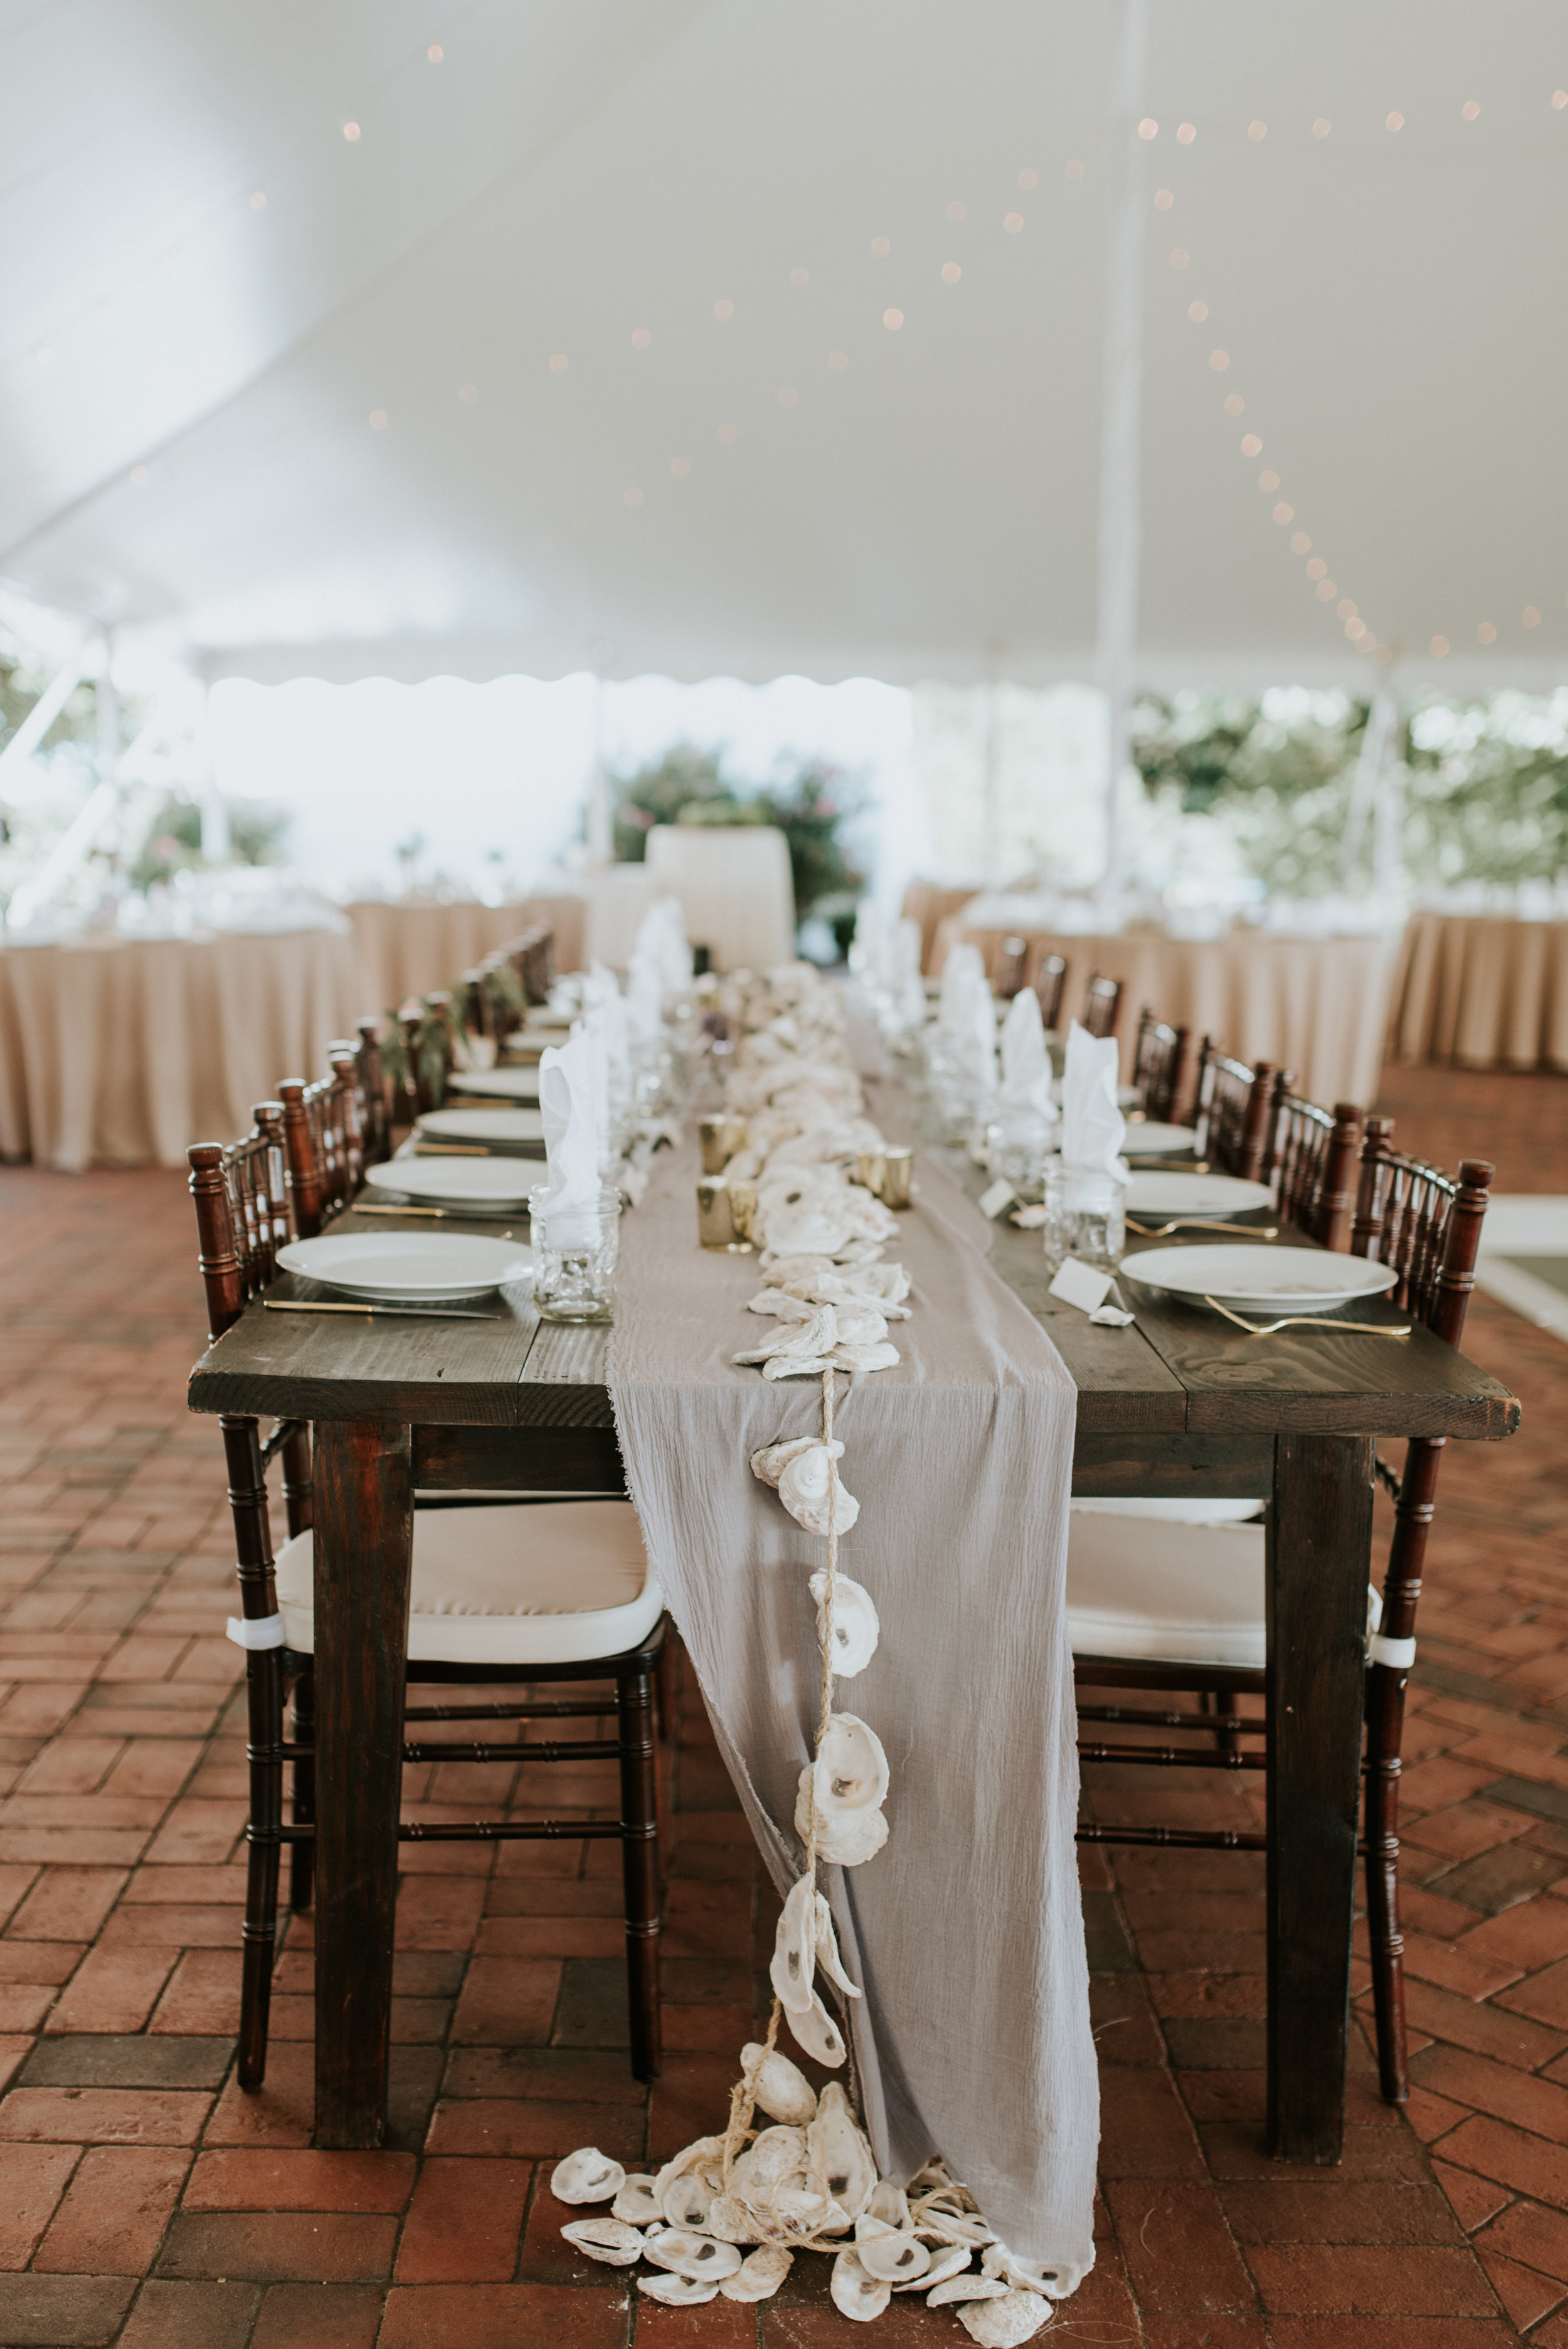 Rustic Oyster Themed Eastern Shore Maryland Outdoor Wedding by East Made Event Company Wedding Planner and Bekah Kay Creative515.jpg